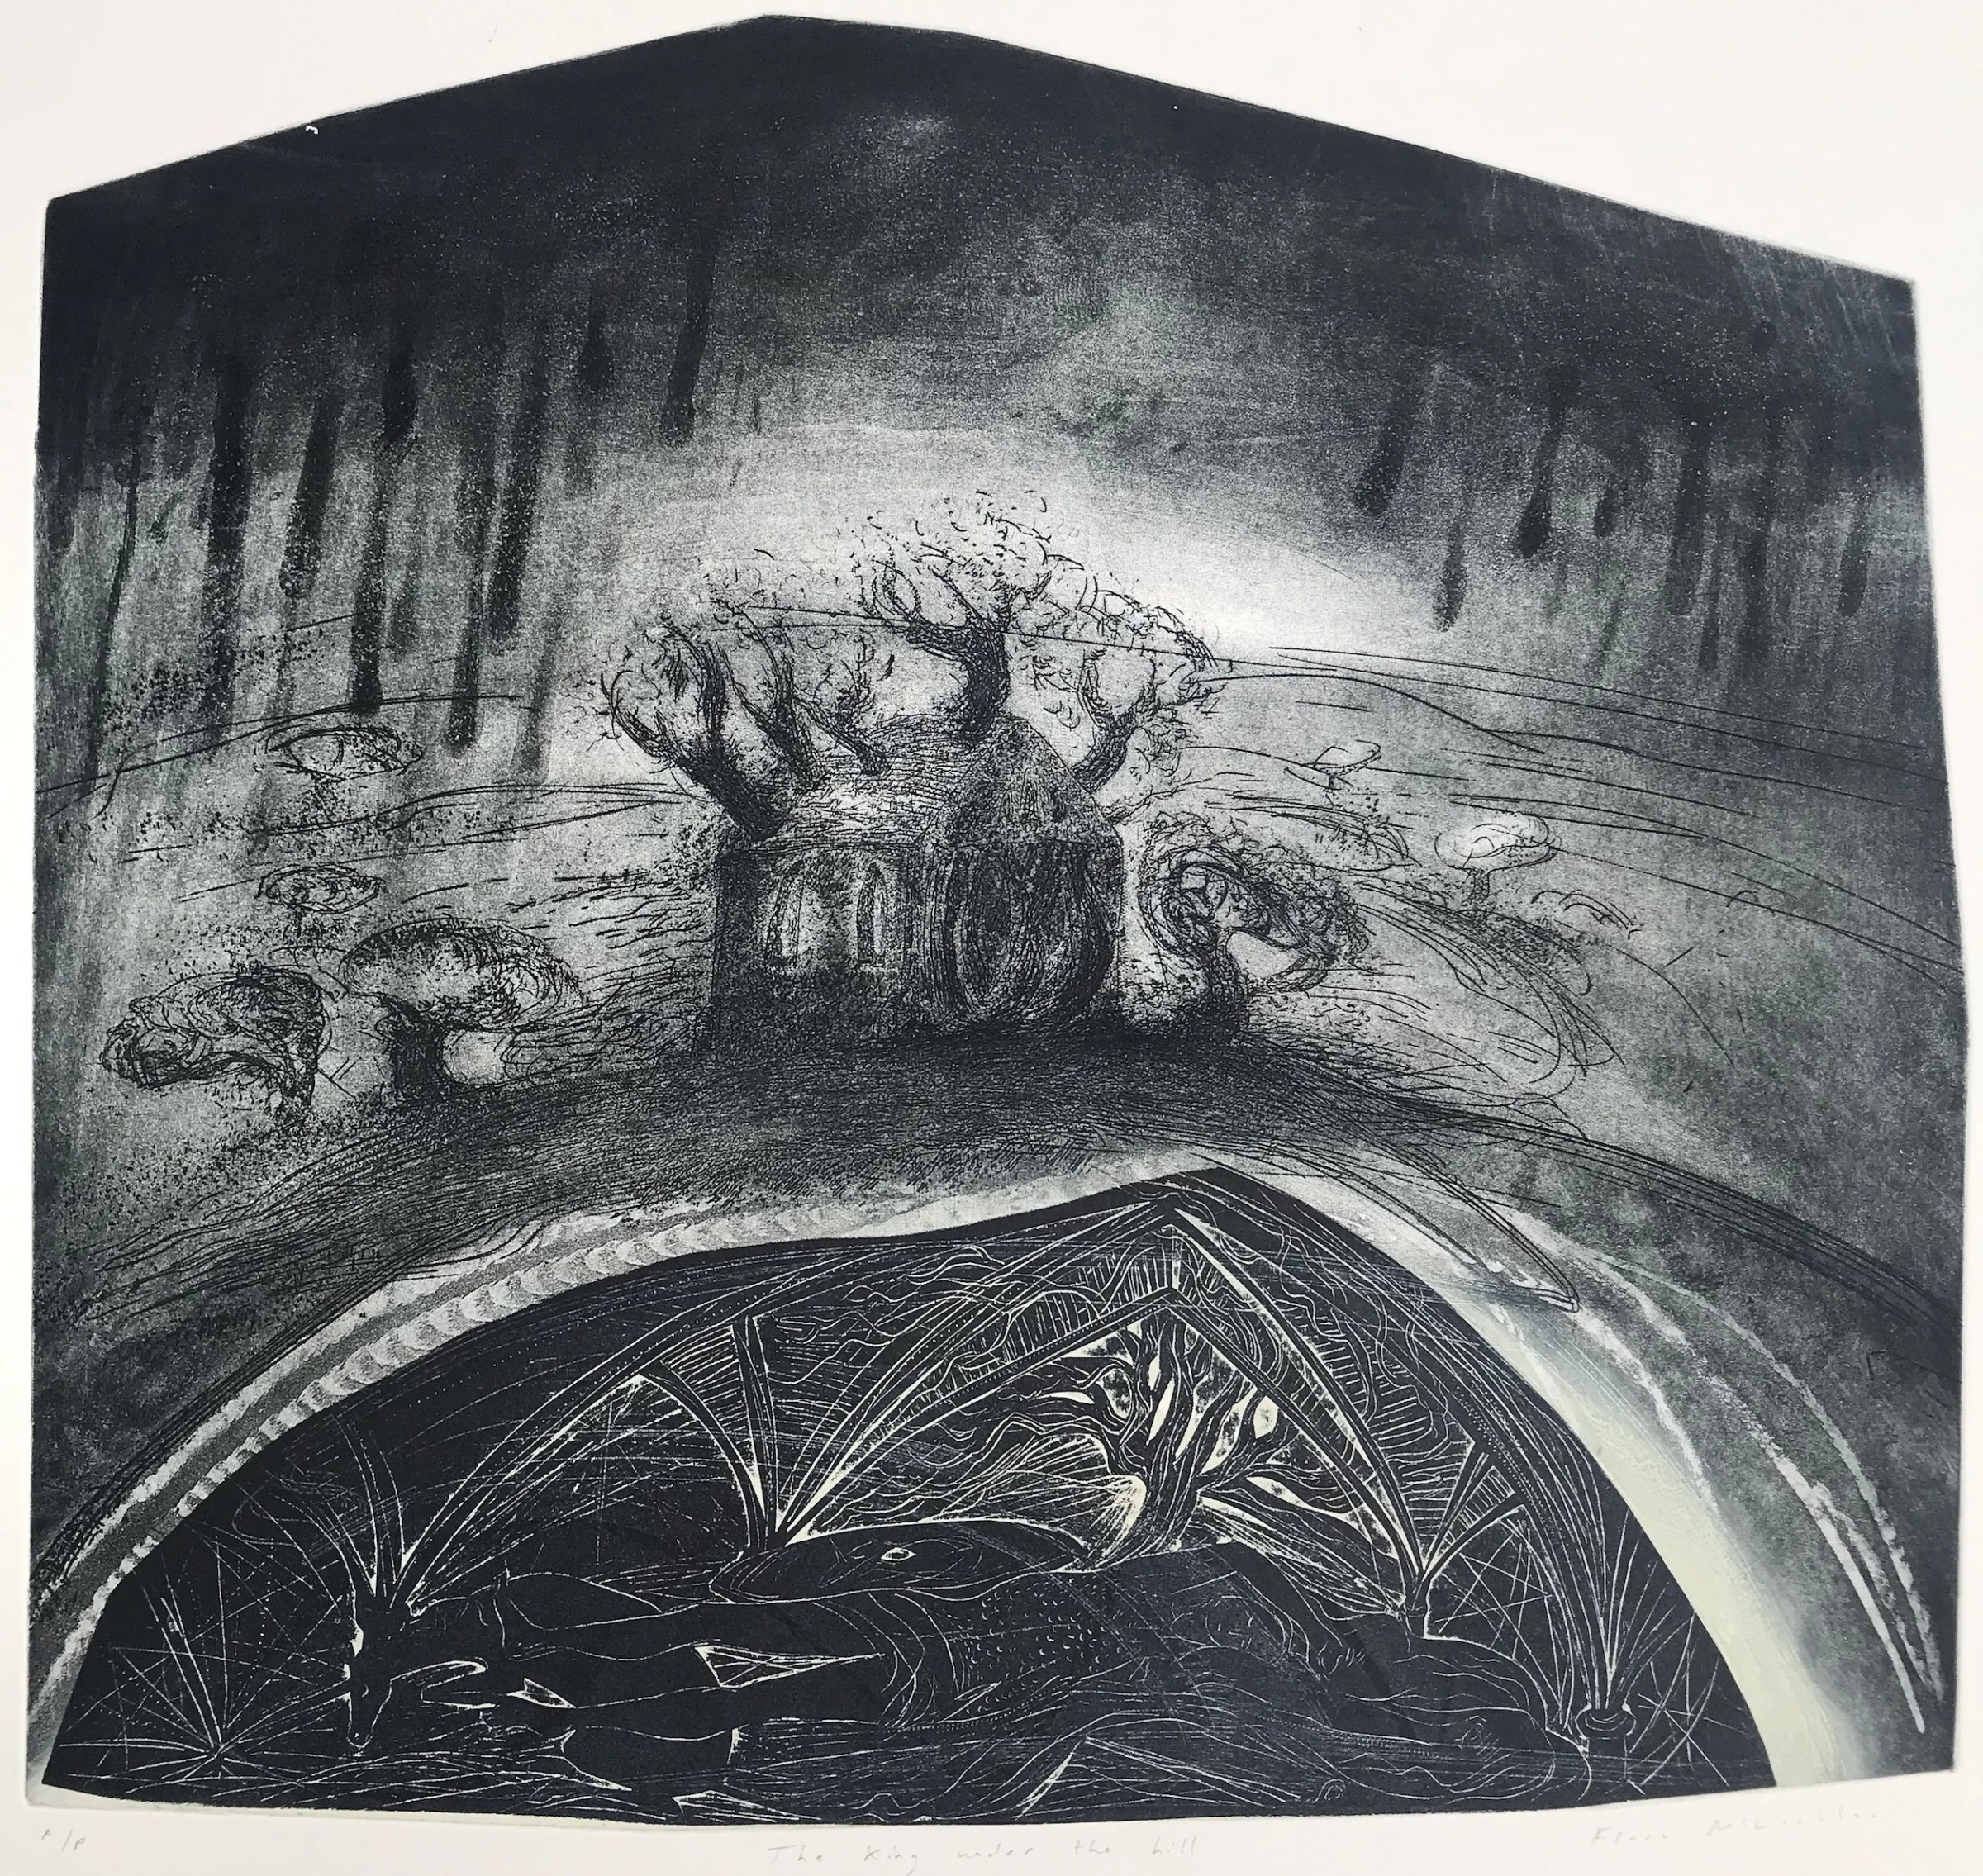 """<span class=""""link fancybox-details-link""""><a href=""""/exhibitions/17/works/image_standalone606/"""">View Detail Page</a></span><p><strong>Flora McLachlan</strong></p><p>The King Under the Hill</p><p>etching & block print, edition of 12</p><p>56 x 62cm</p><p>£360 framed</p><p>£280 unframed</p>"""